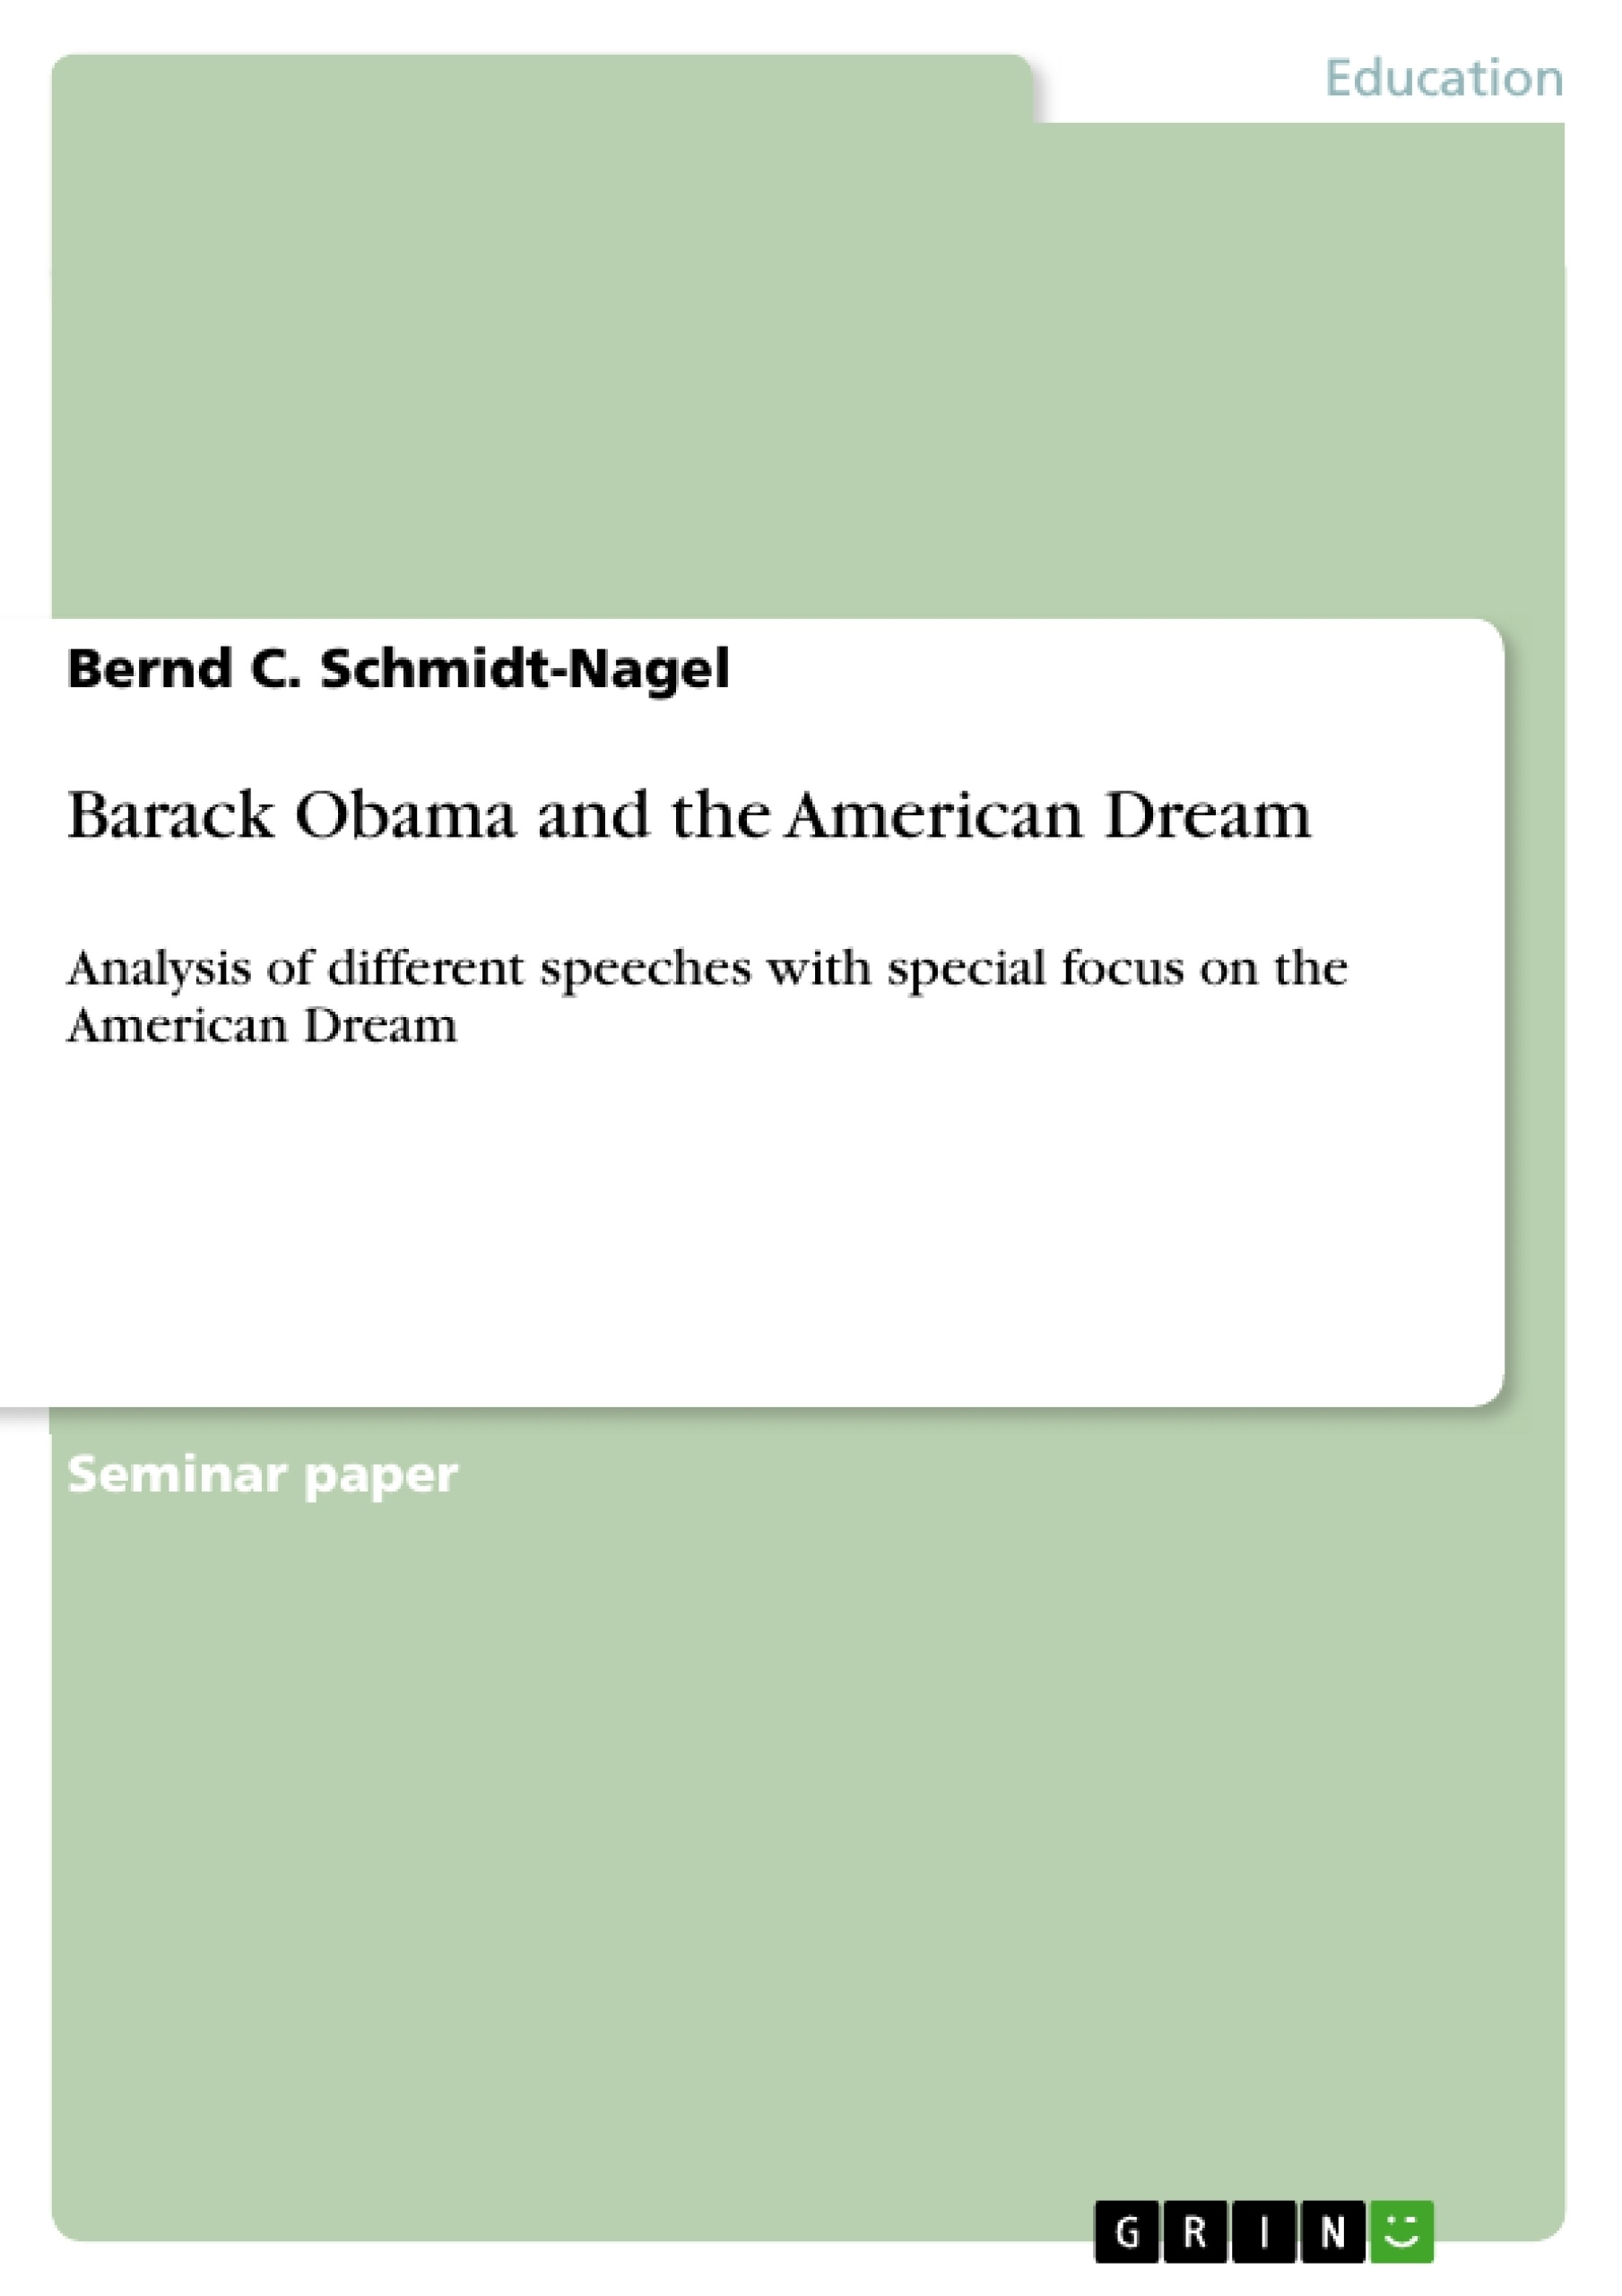 barack obama essay paper essay about barack obama argumentative  barack obama and the american dream publish your master s thesis barack obama and the american